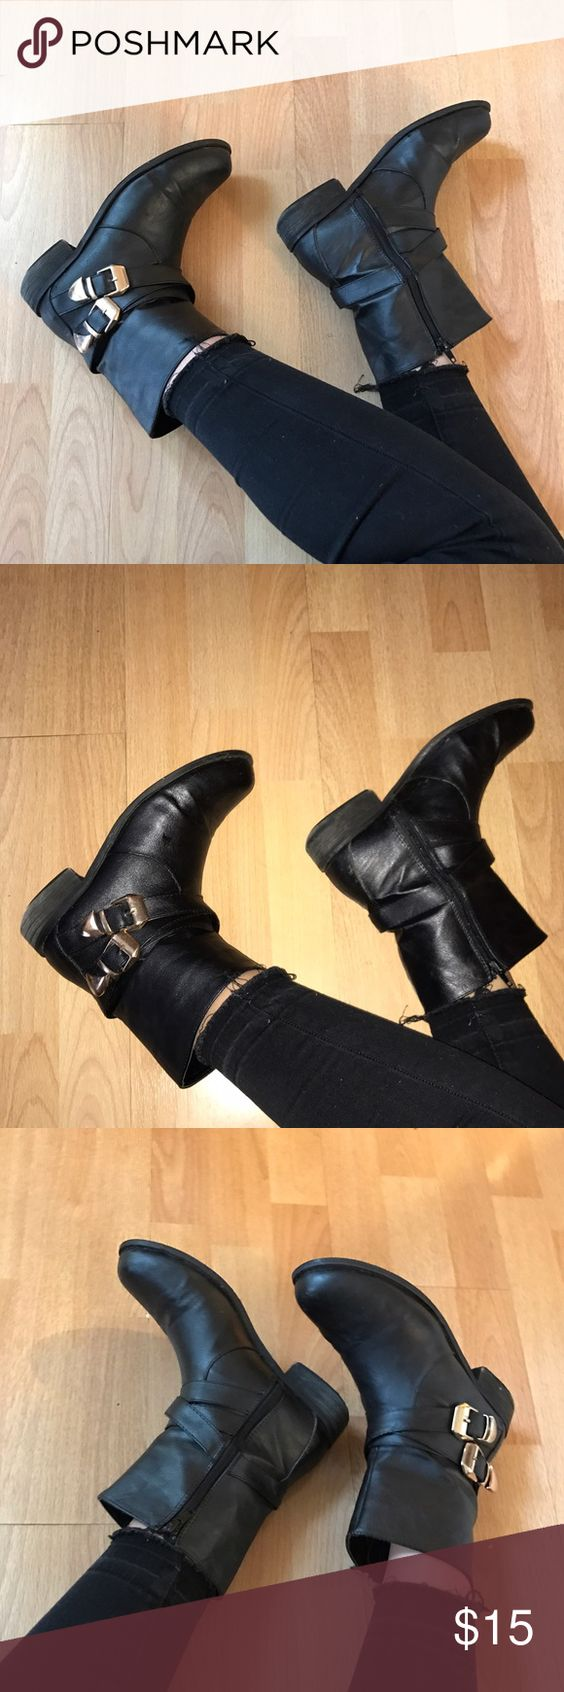 Black w/ Gold Buckle Booties Super trendy black booties with gold buckles! Tiny tears at the front of the boot and wear is shown at the heels. Other than that, these are in good condition :) Bucco Shoes Ankle Boots & Booties